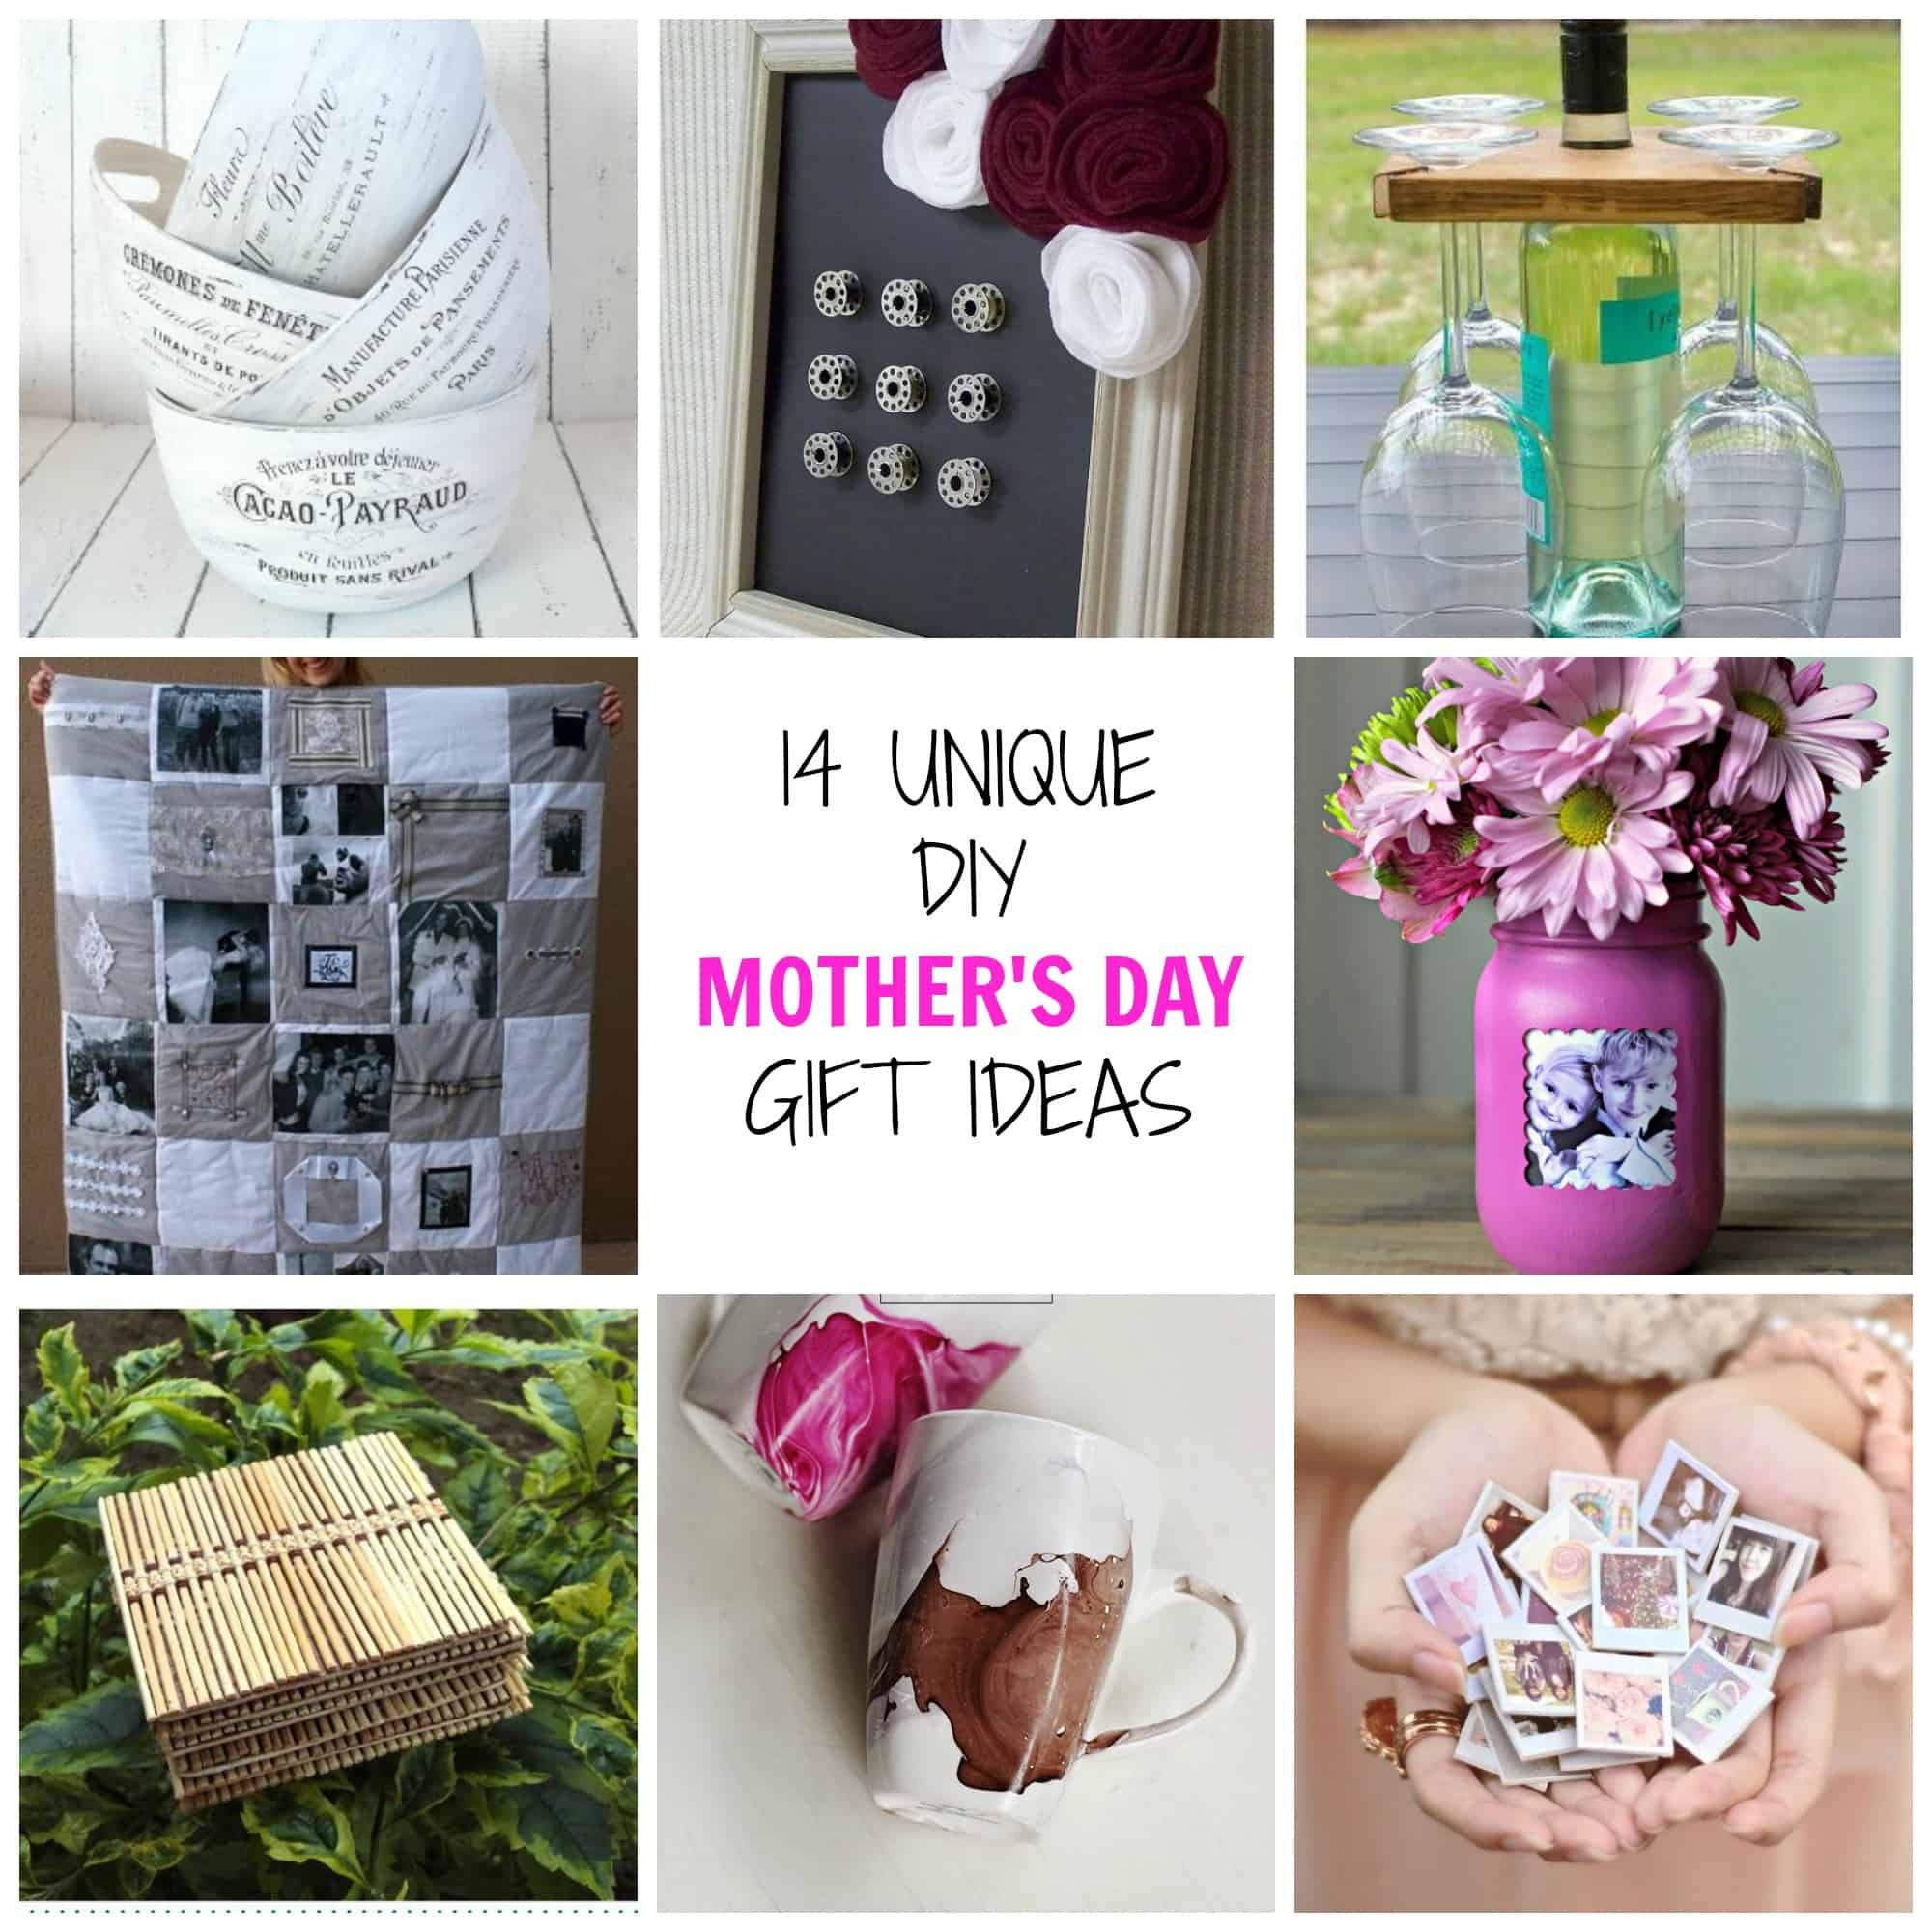 Mothers Day Unique Gift Ideas  14 Unique DIY Mother s Day Gifts Simplify Create Inspire